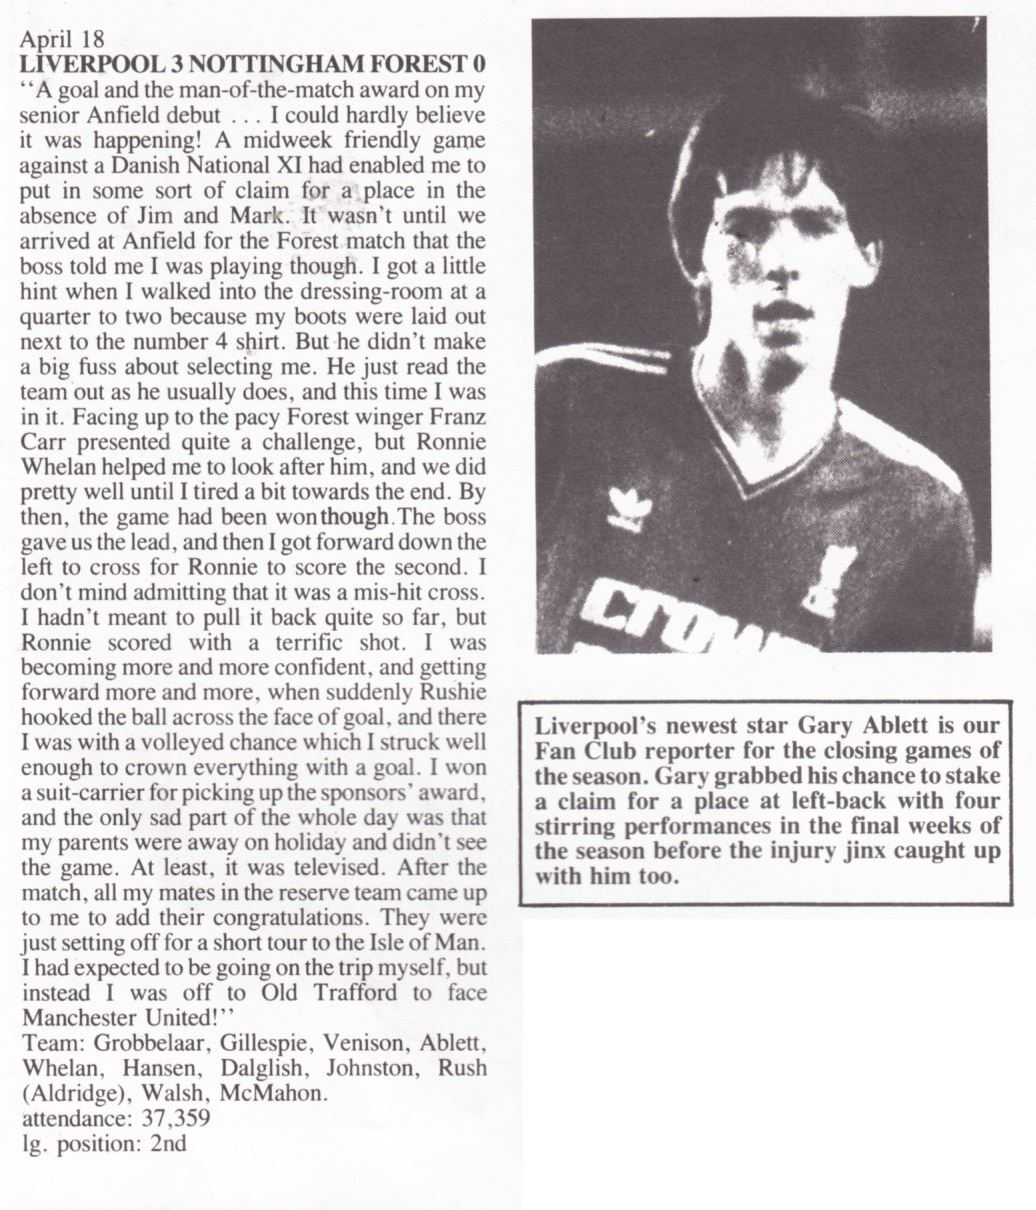 Gary Ablett's view on Liverpool - Nottingham Forest 18 April 1987